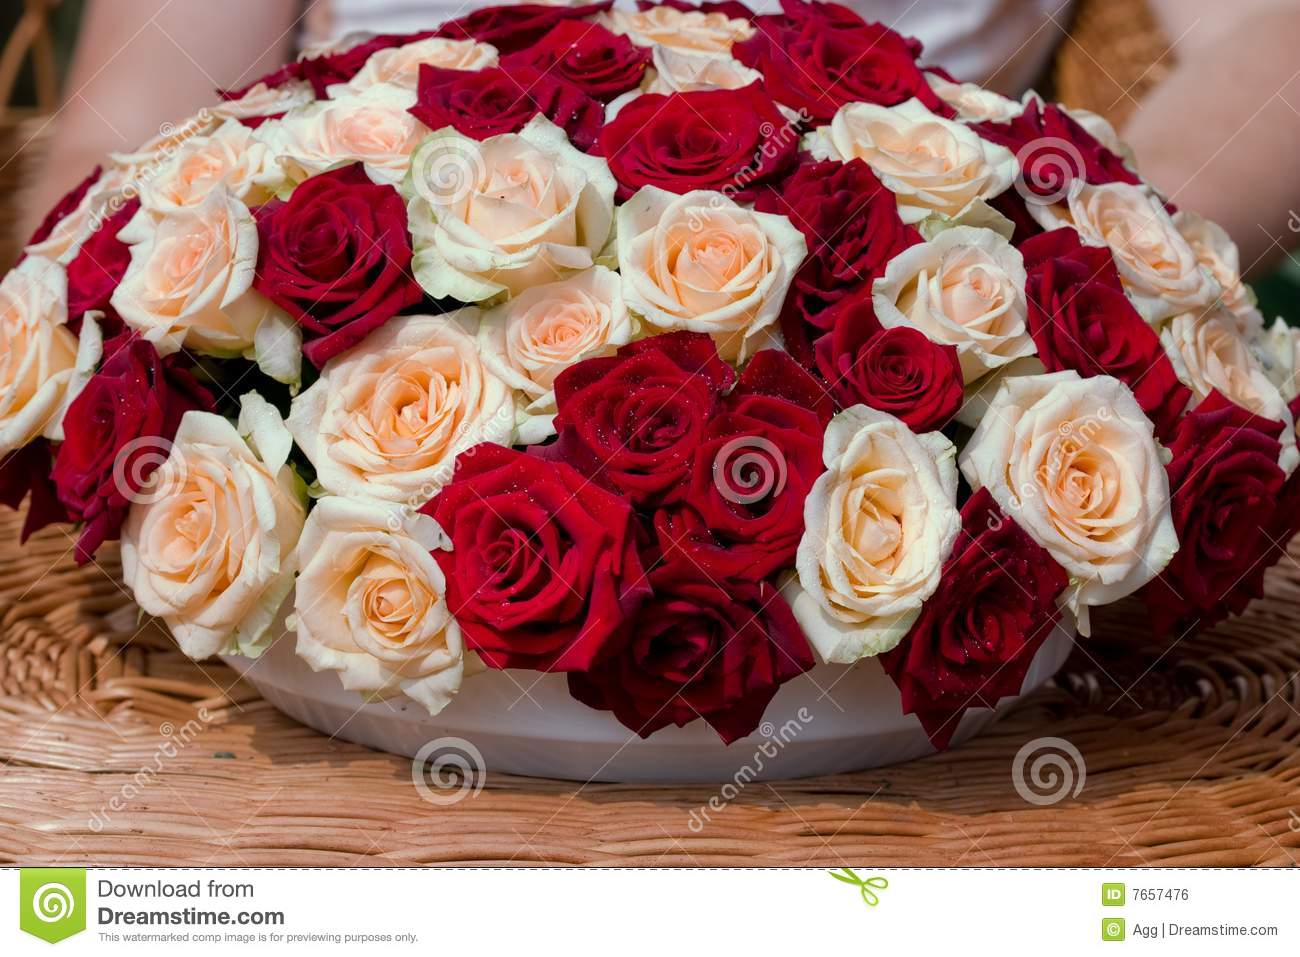 Bunch of flowers images download freeuse Bunch Of Flowers Royalty Free Stock Image - Image: 7657476 freeuse